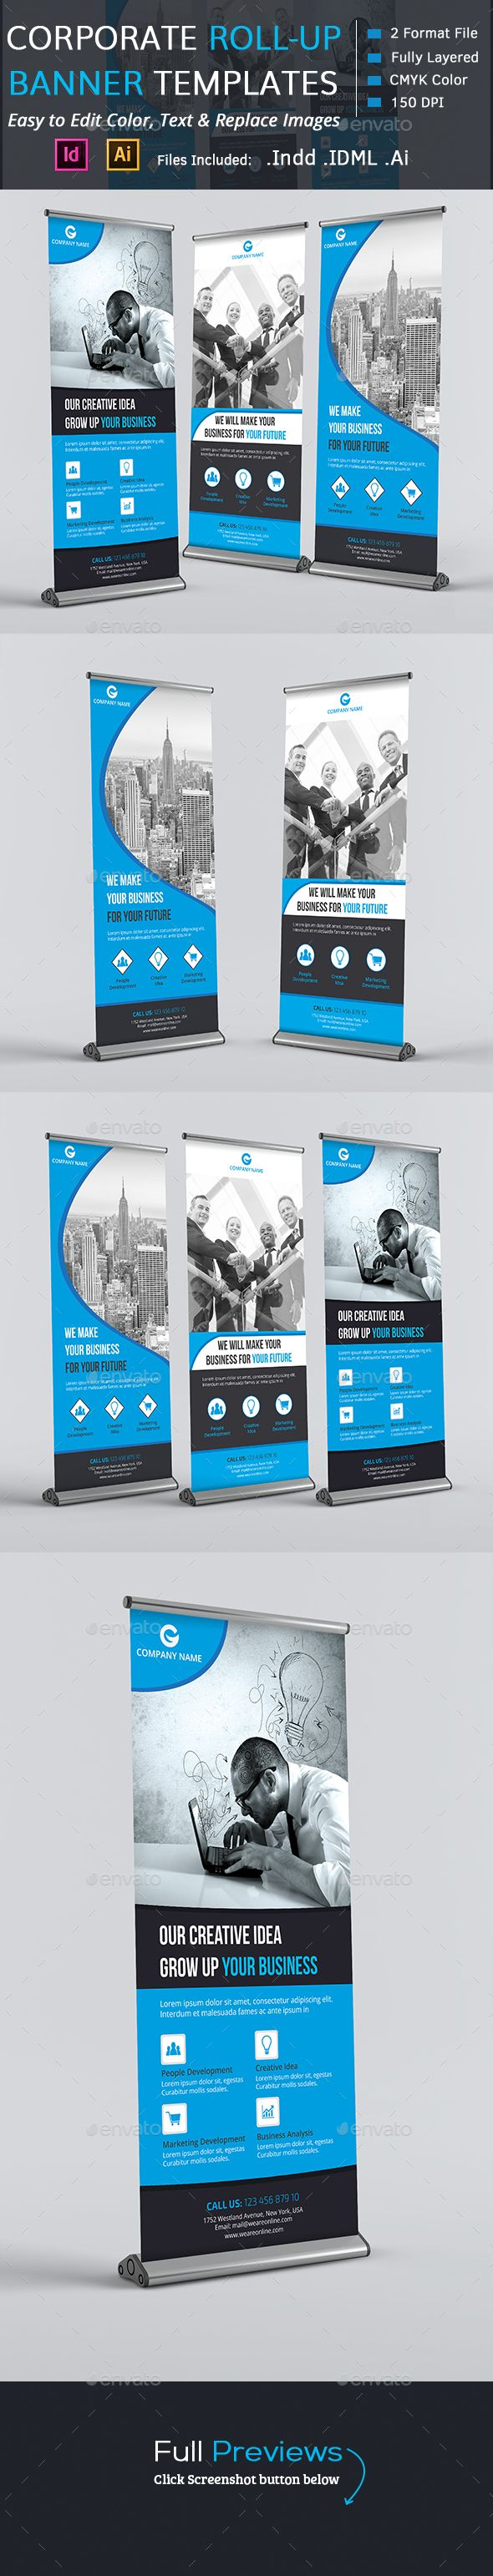 Corporate Rollup Banners — InDesign INDD #global #roll up banners • Available here → https://graphicriver.net/item/corporate-rollup-banners/13922956?ref=pxcr